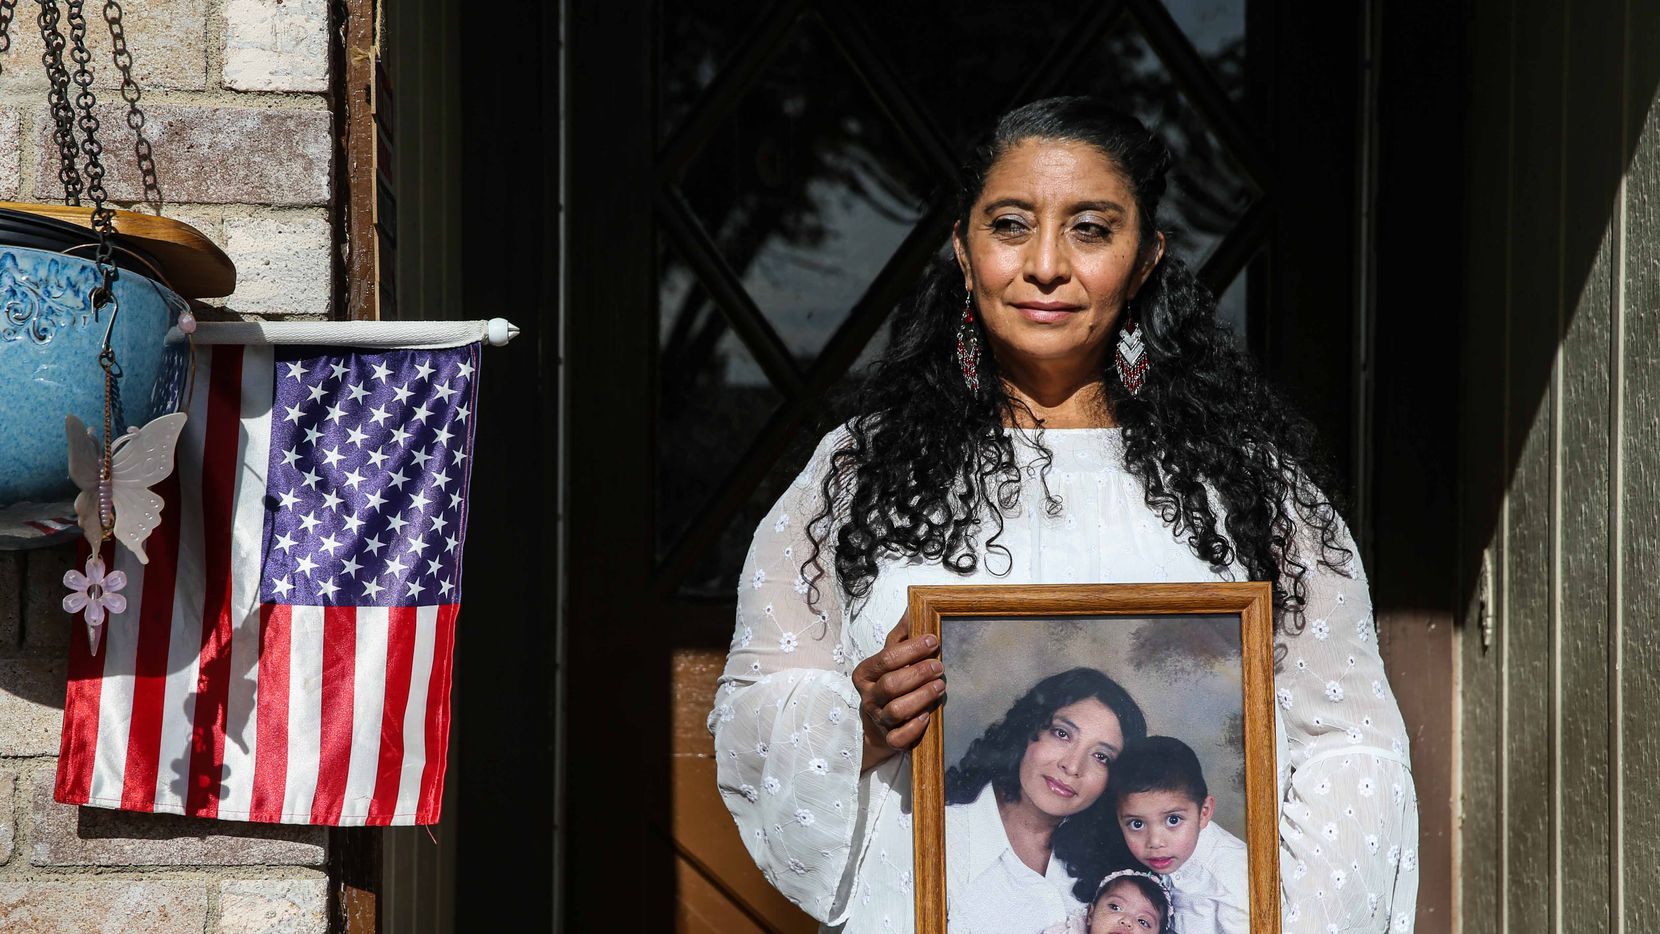 Dalila Sandoval poses in front of her home holding a photo of her and her two U.S.-born children in Arlington on Wednesday, December 23, 2020. Sandoval has been in immigration limbo for nearly two decades as a Tepesiana, as she calls herself, an immigrant who holds a temporary protected status in the U.S.. The 52-year-old native of El Salvador is pushing for permanent residency and a citizenship pathway for all immigrants holding TPS.